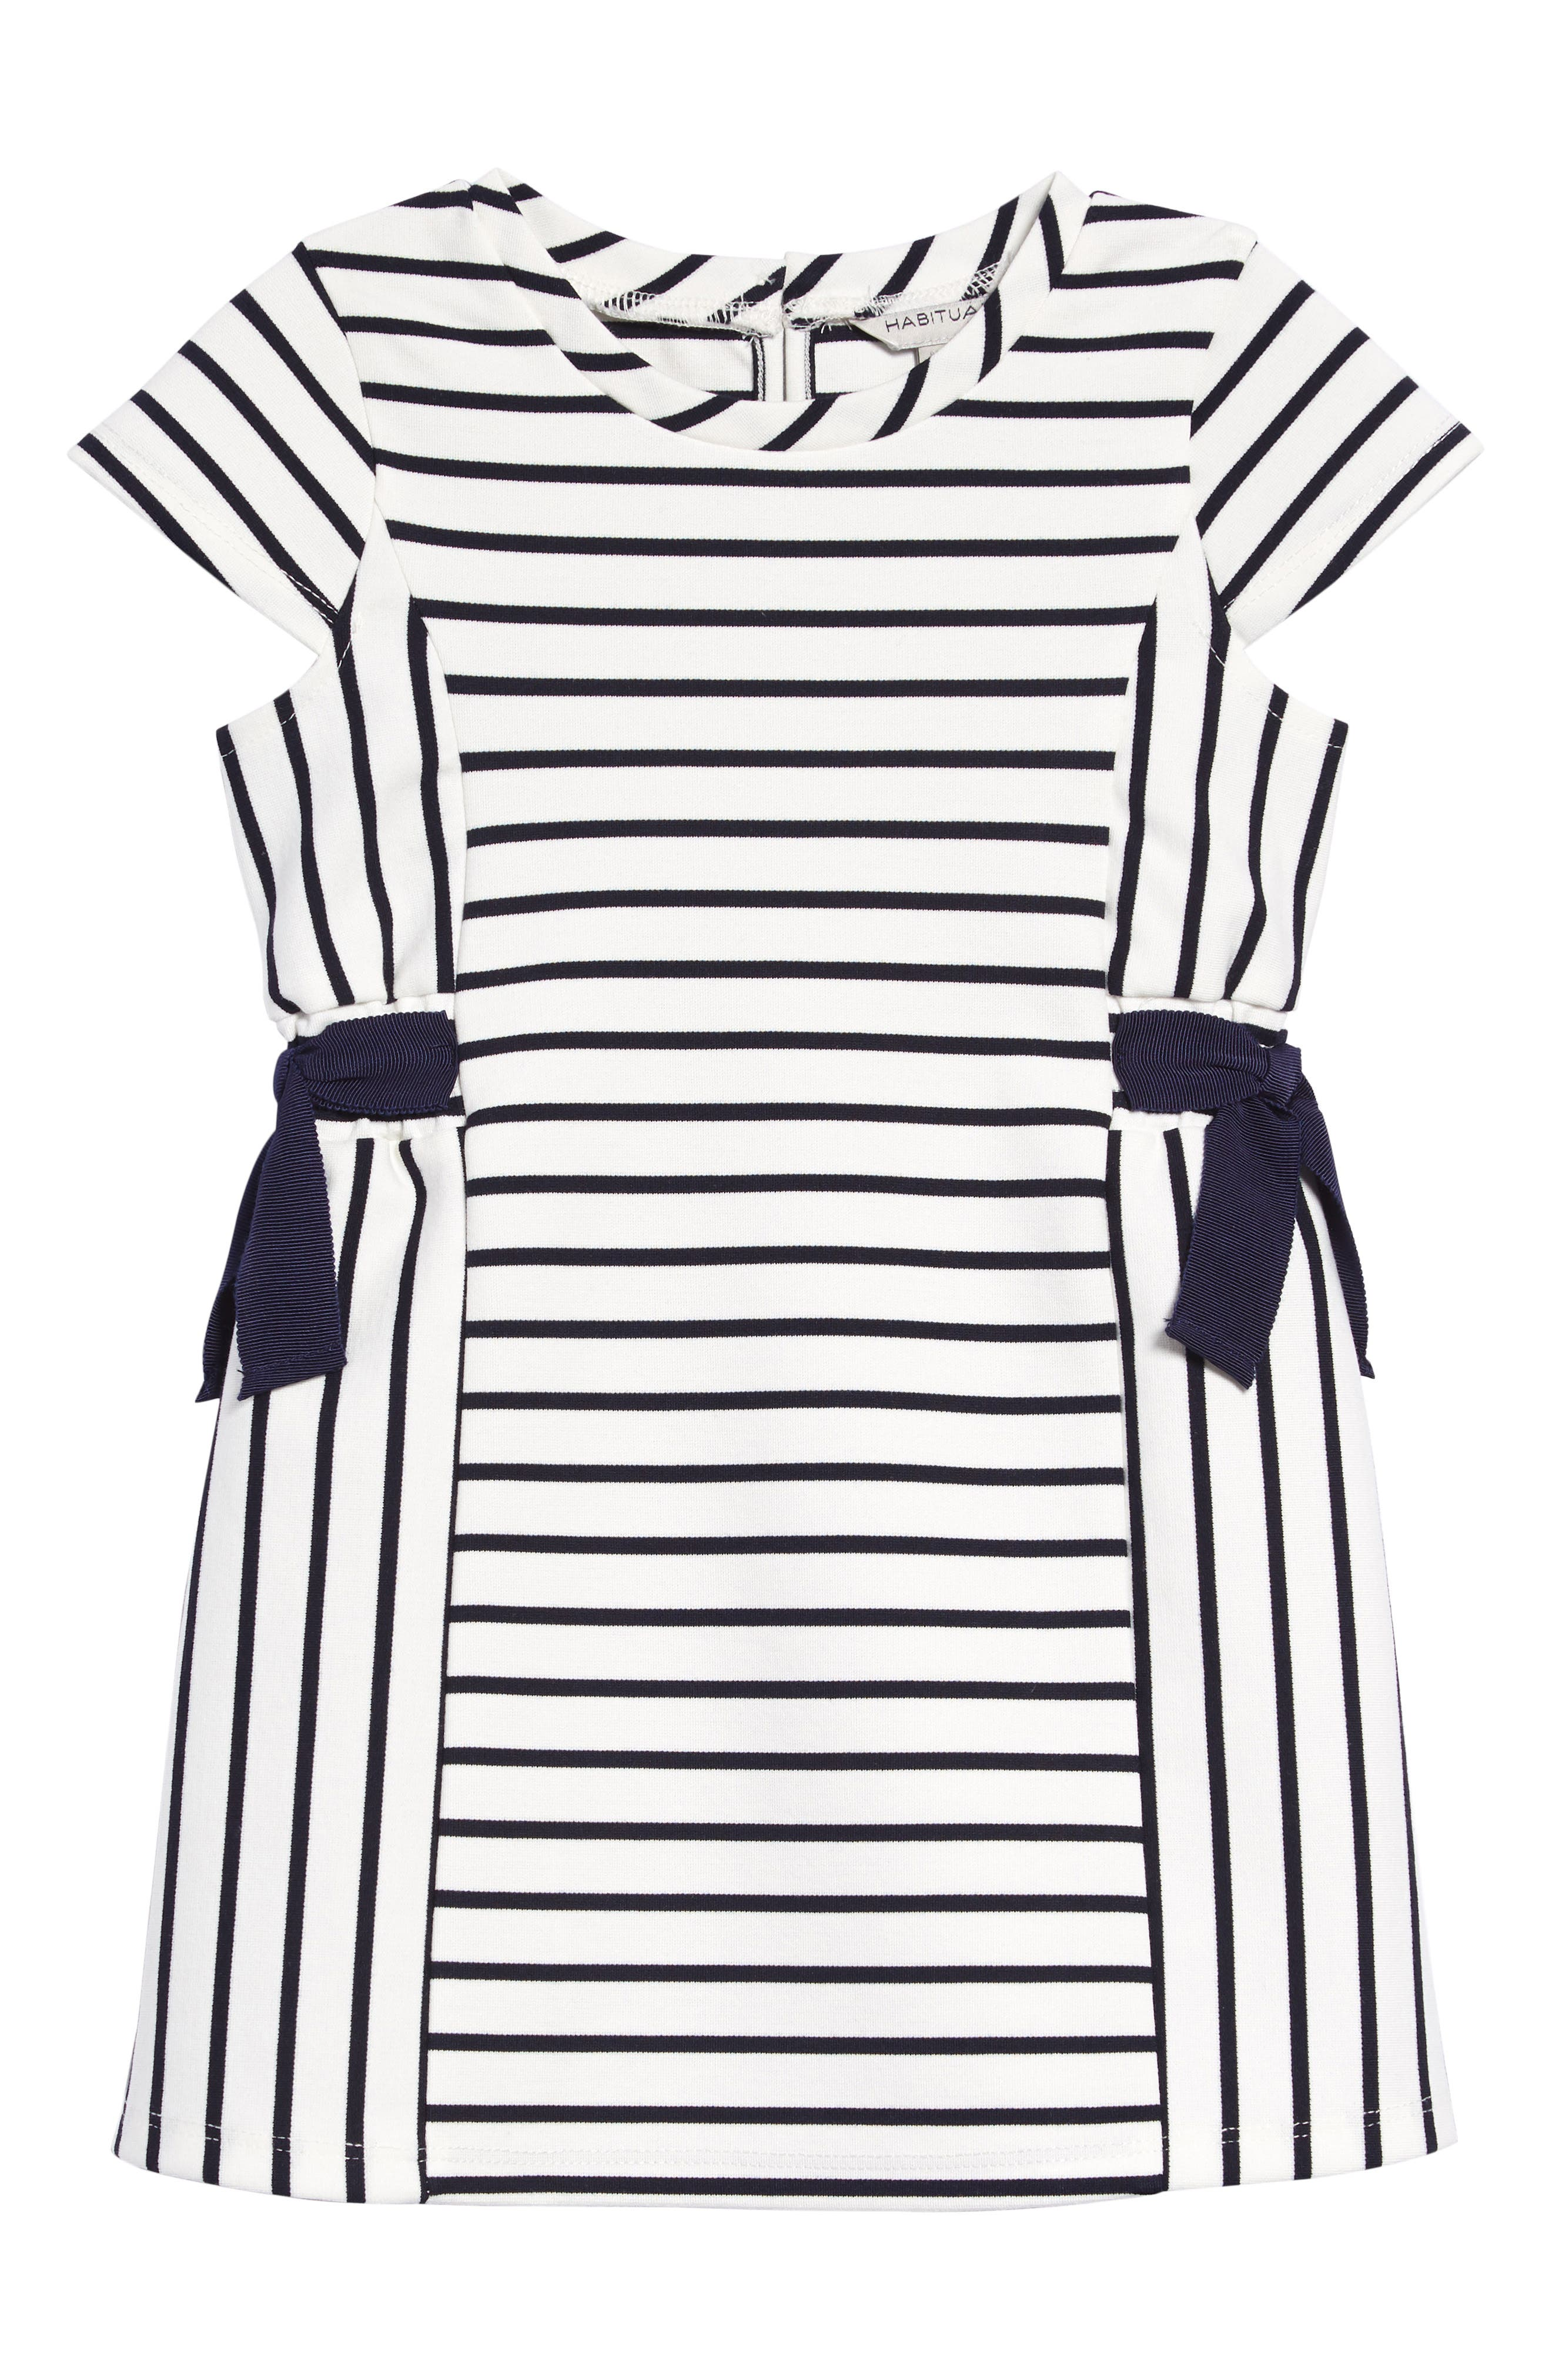 Navy grosgrain bows enhance the classic seaside-inspired style of a cap-sleeve dress patterned with marine-blue stripes. Style Name: Habitual Stripe & Bow Dress (Toddler Girl). Style Number: 5976929. Available in stores.